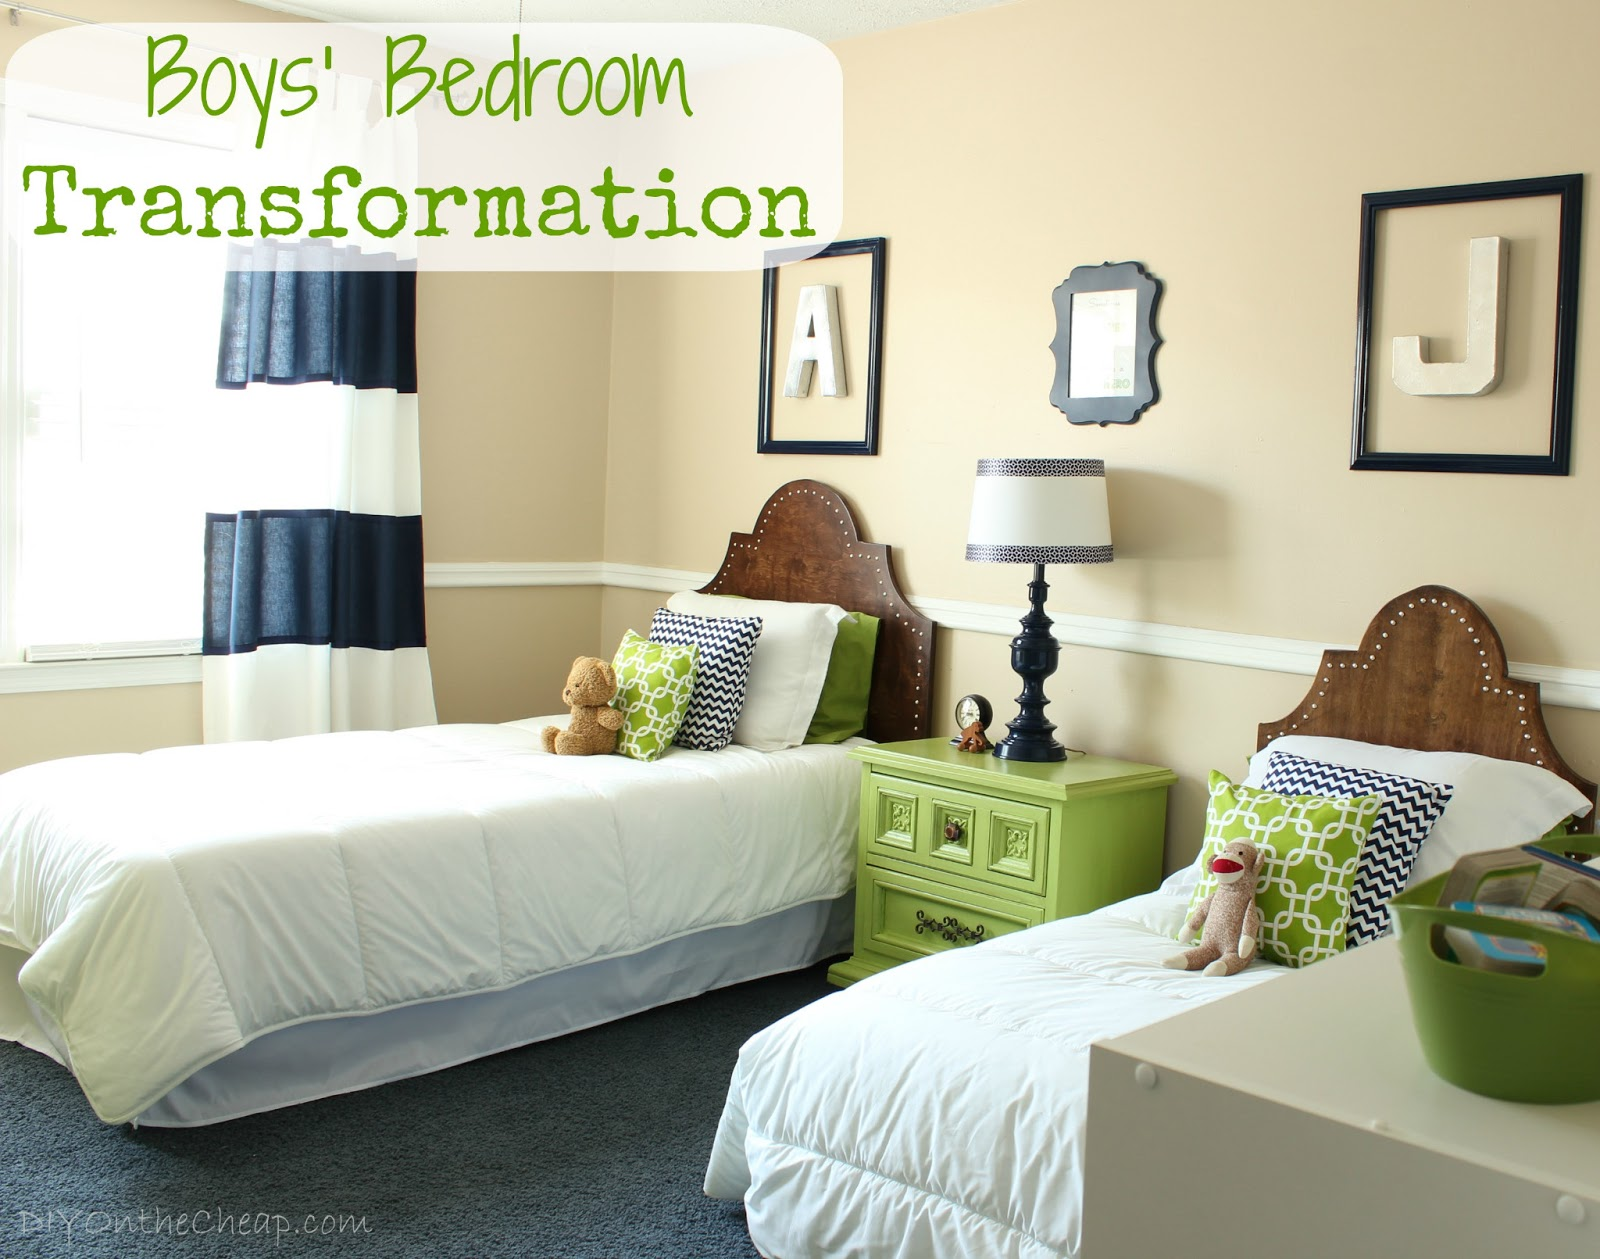 Big boy room transformation reveal erin spain for Boys bedroom designs